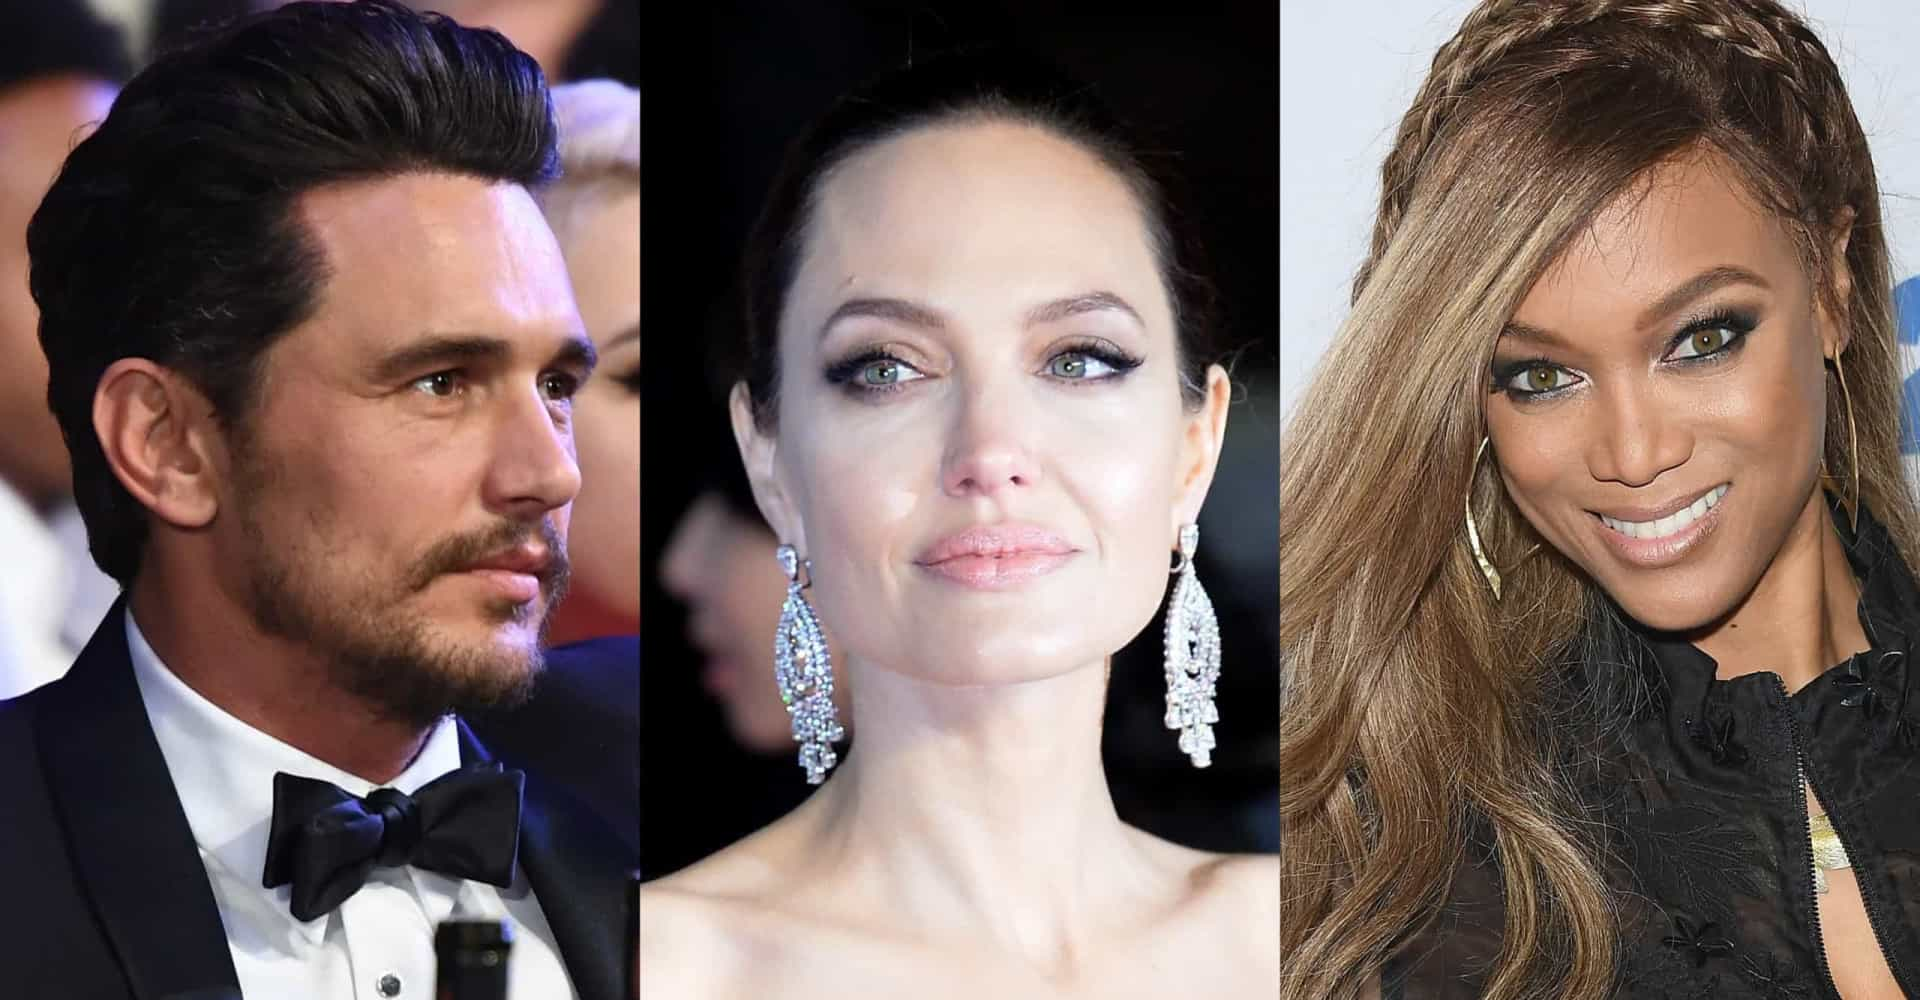 These celebrities could be your next professor